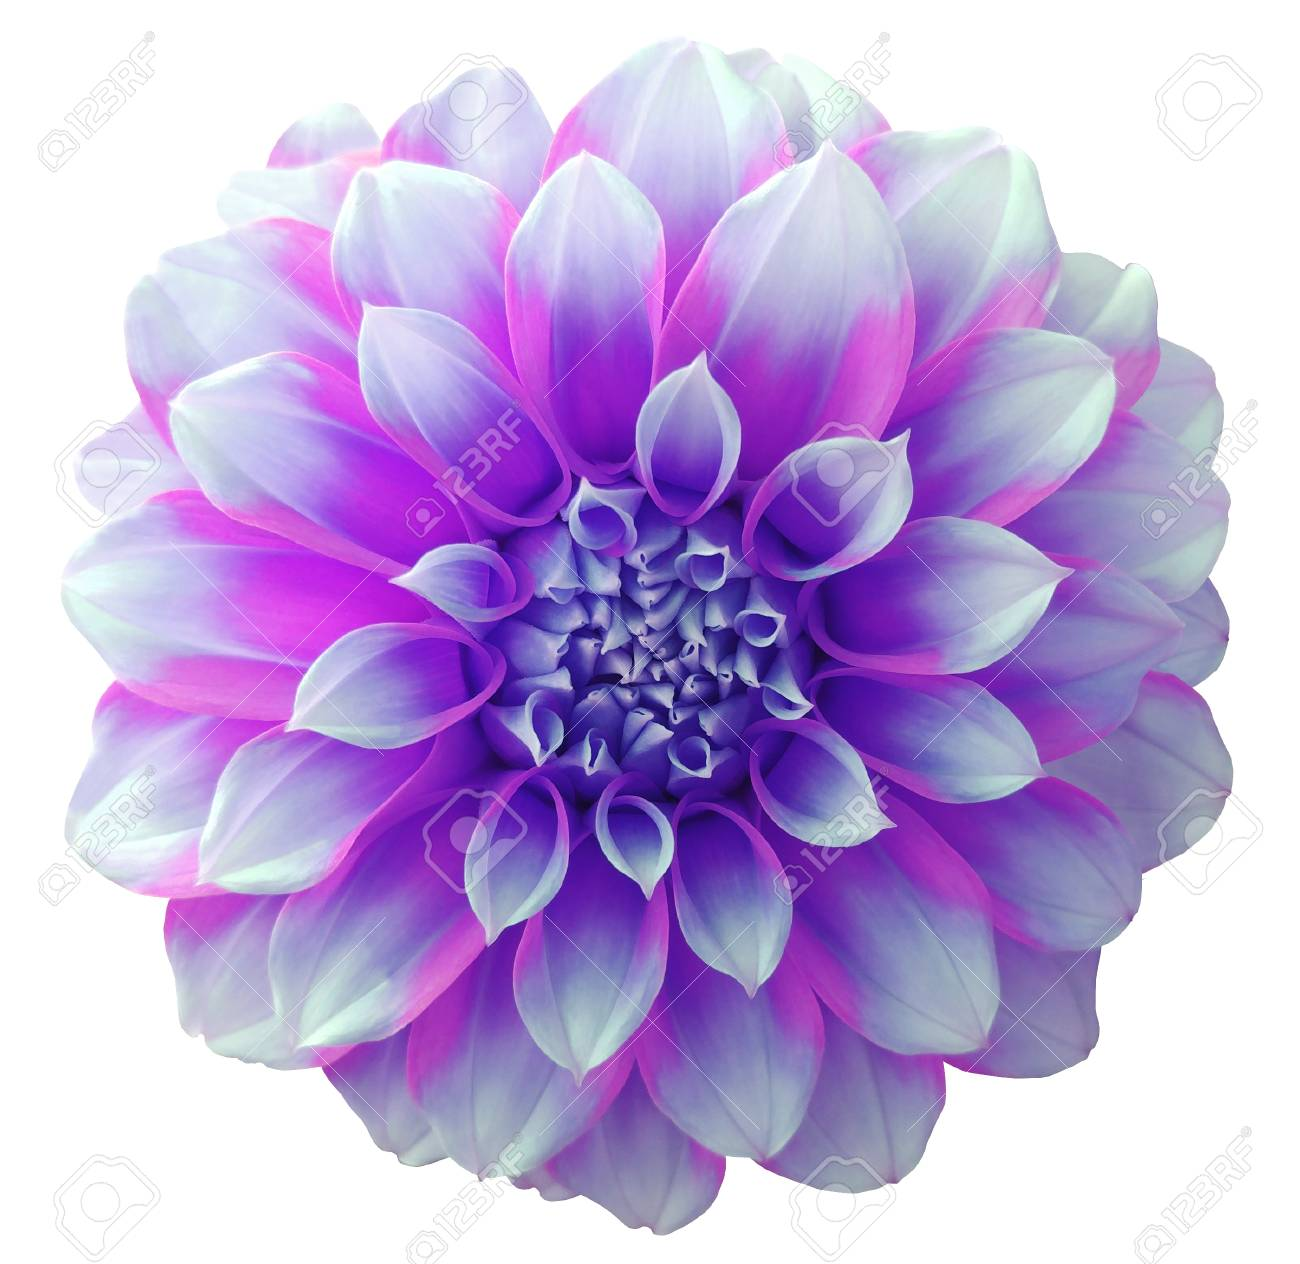 Dahlia Flower Purple Variegated Flower White Background Isolated Stock Photo Picture And Royalty Free Image Image 65718277